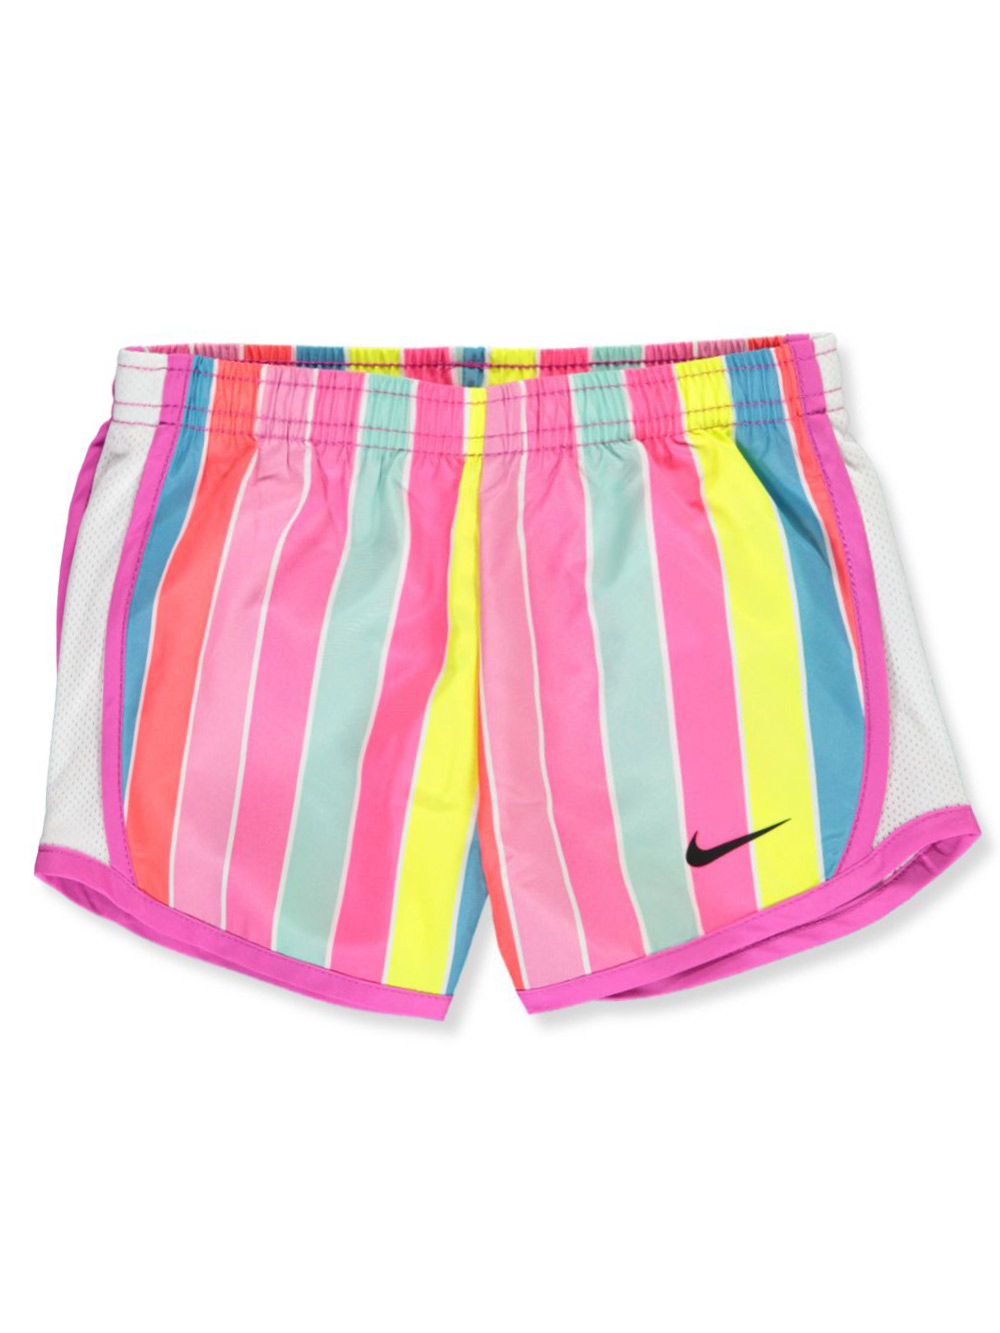 Girls' Striped Performance Shorts